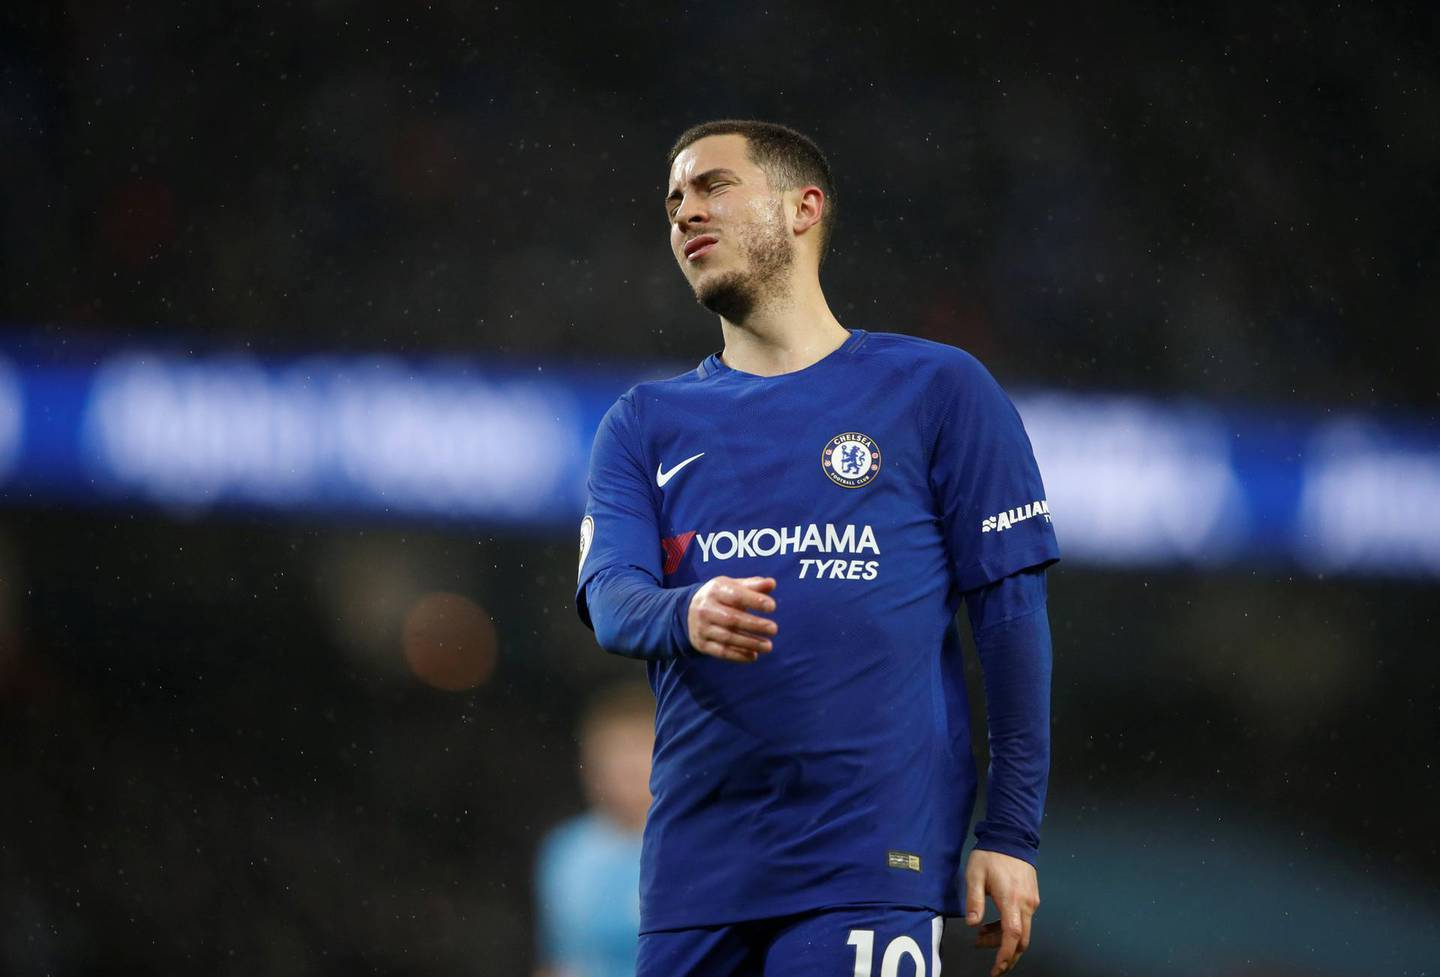 """Soccer Football - Premier League - Manchester City vs Chelsea - Etihad Stadium, Manchester, Britain - March 4, 2018   Chelsea's Eden Hazard looks dejected    Action Images via Reuters/Carl Recine    EDITORIAL USE ONLY. No use with unauthorized audio, video, data, fixture lists, club/league logos or """"live"""" services. Online in-match use limited to 75 images, no video emulation. No use in betting, games or single club/league/player publications.  Please contact your account representative for further details."""